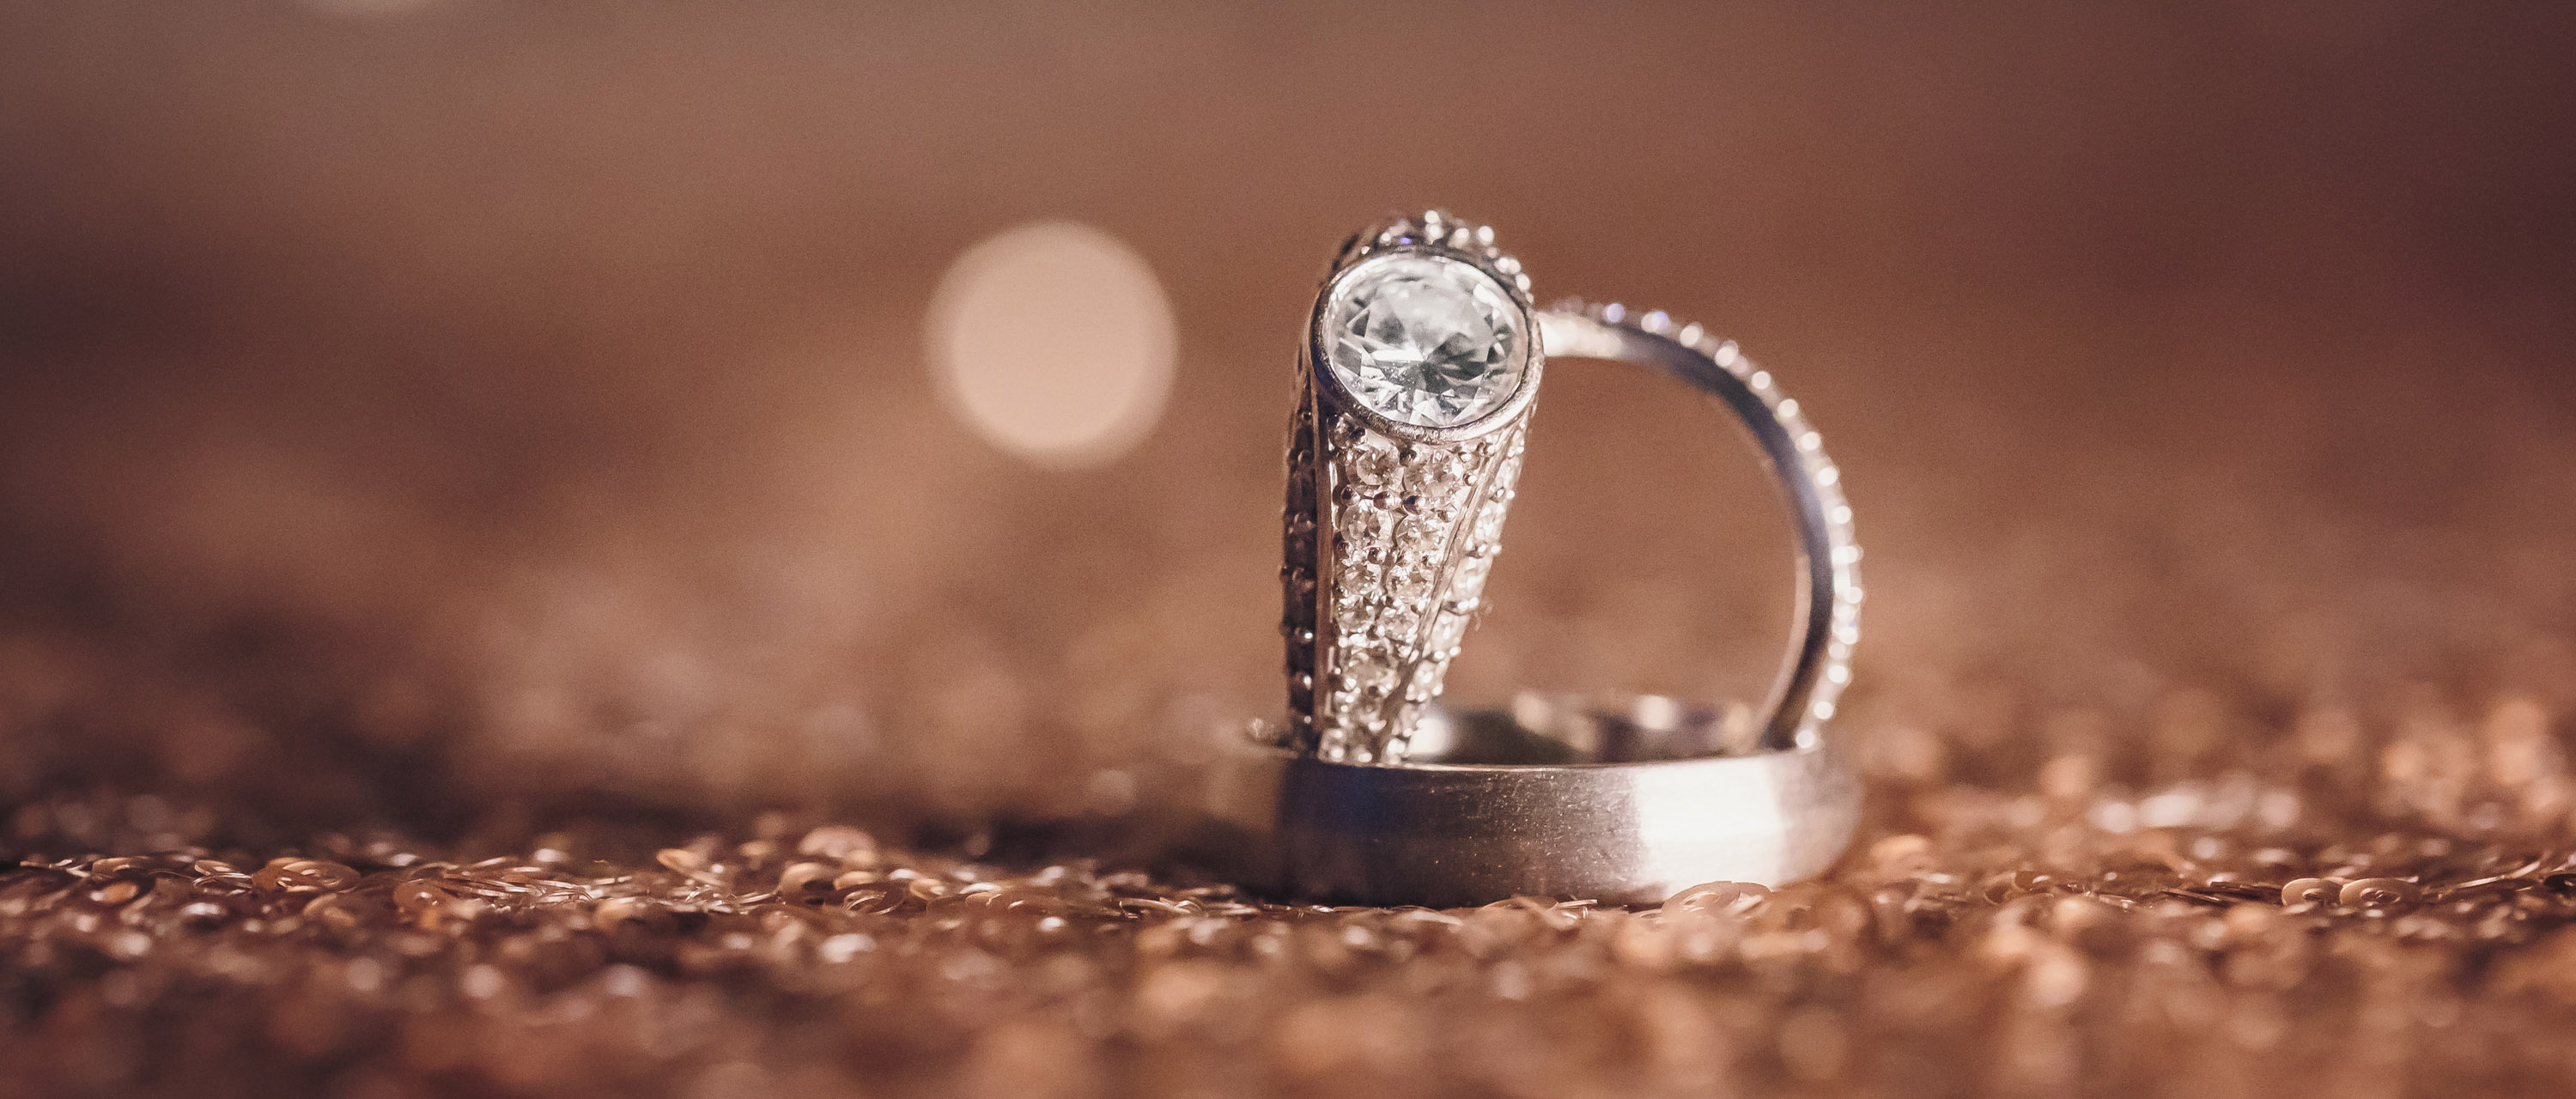 Gold vs Platinum: What's Better For Your Ring?